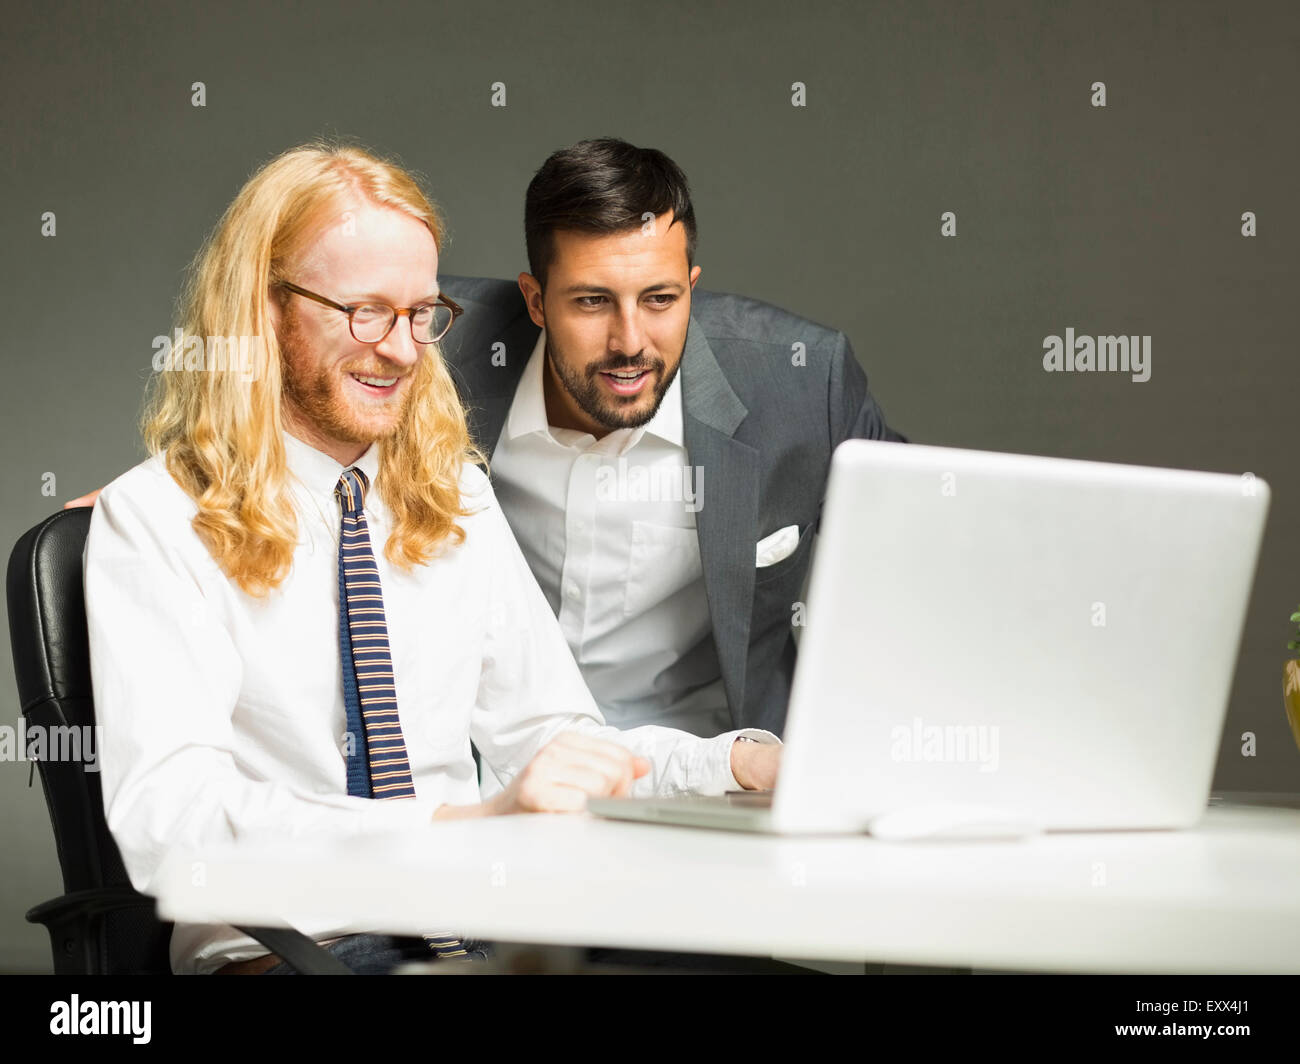 Businessmen looking at laptop in office - Stock Image